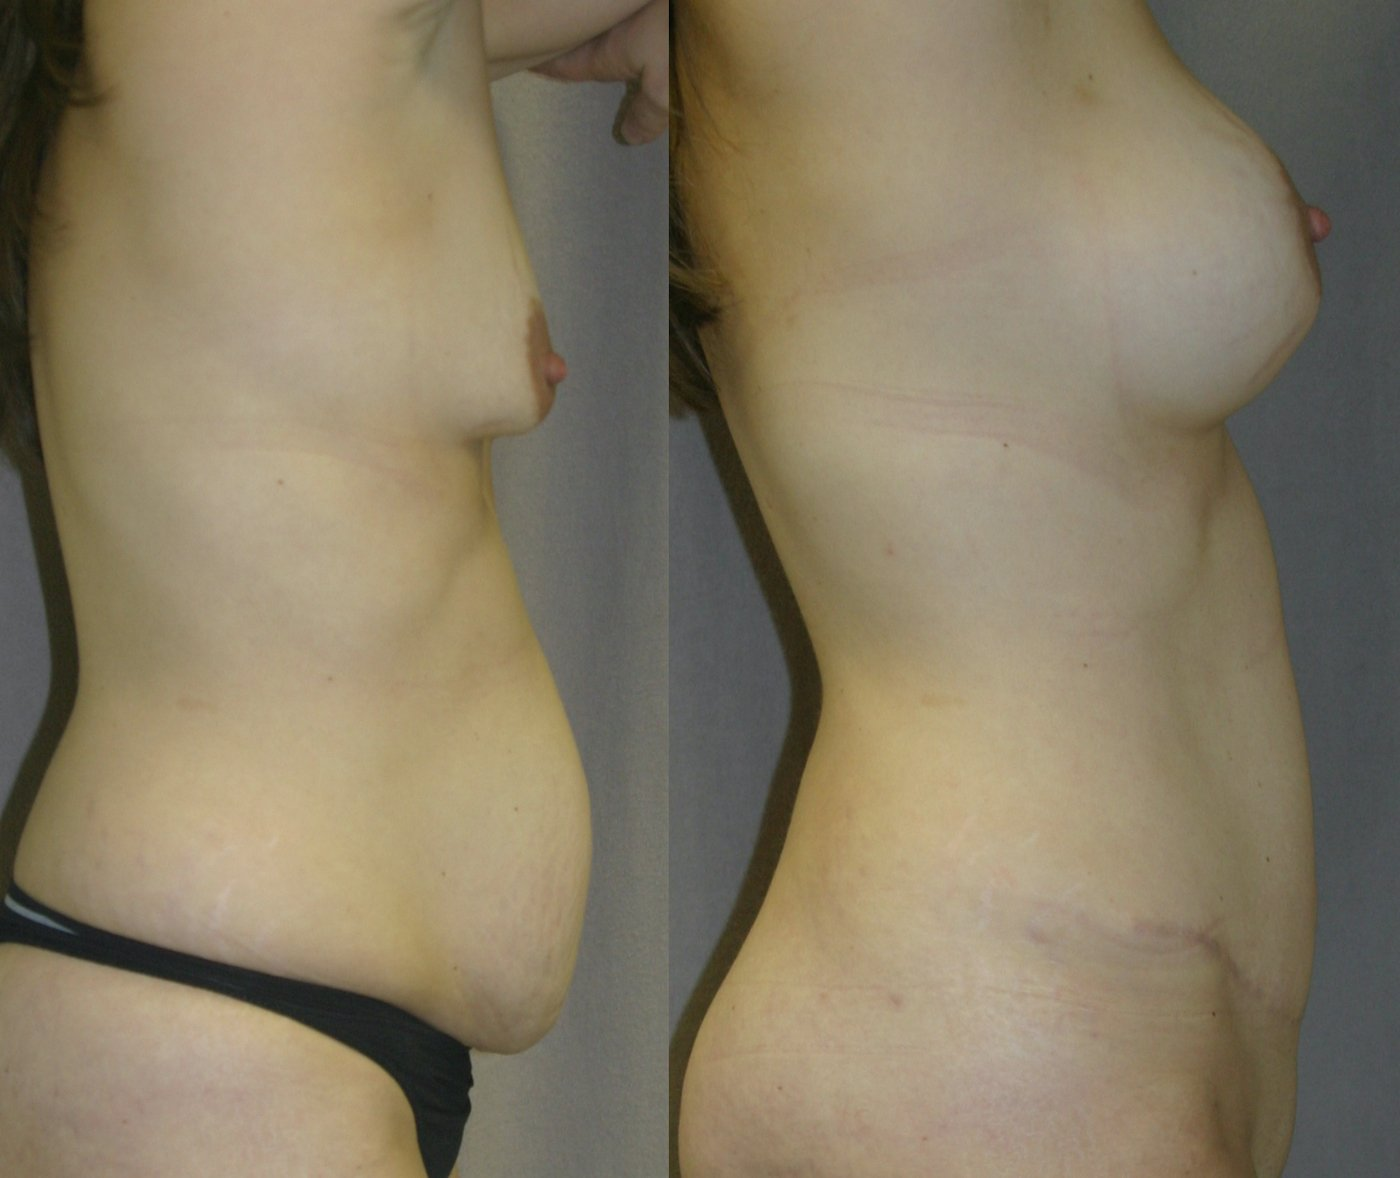 36-year-old Mommy Makover, Breast Augmentation and Tummy Tuck 6 months after surgery, side view